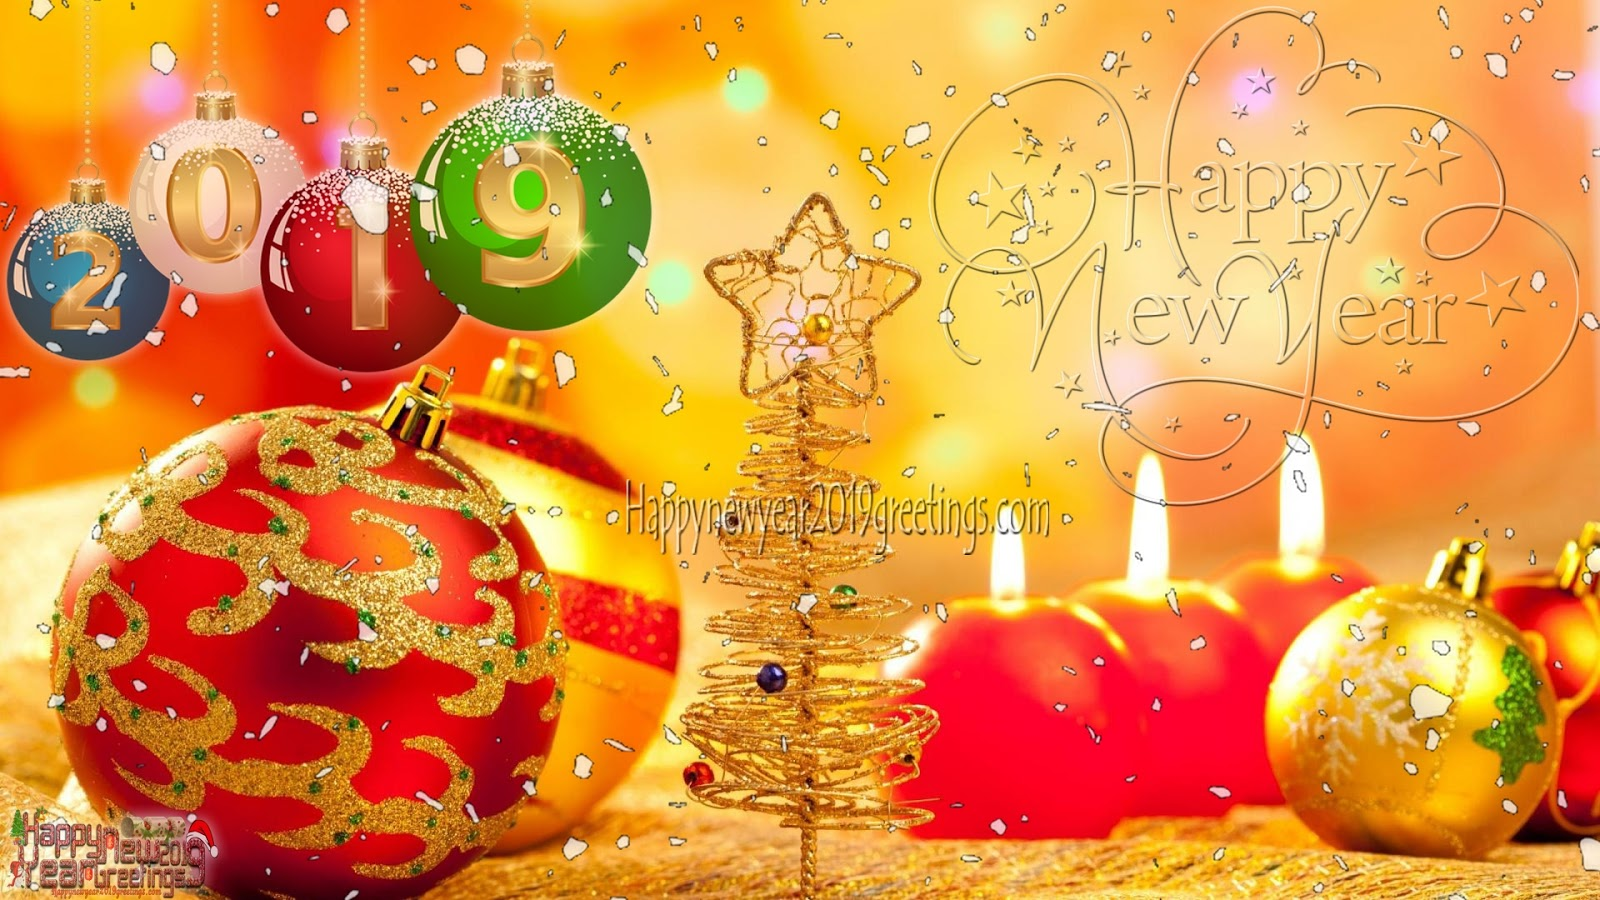 happy new year 2019 hd wallpaper download 1080p